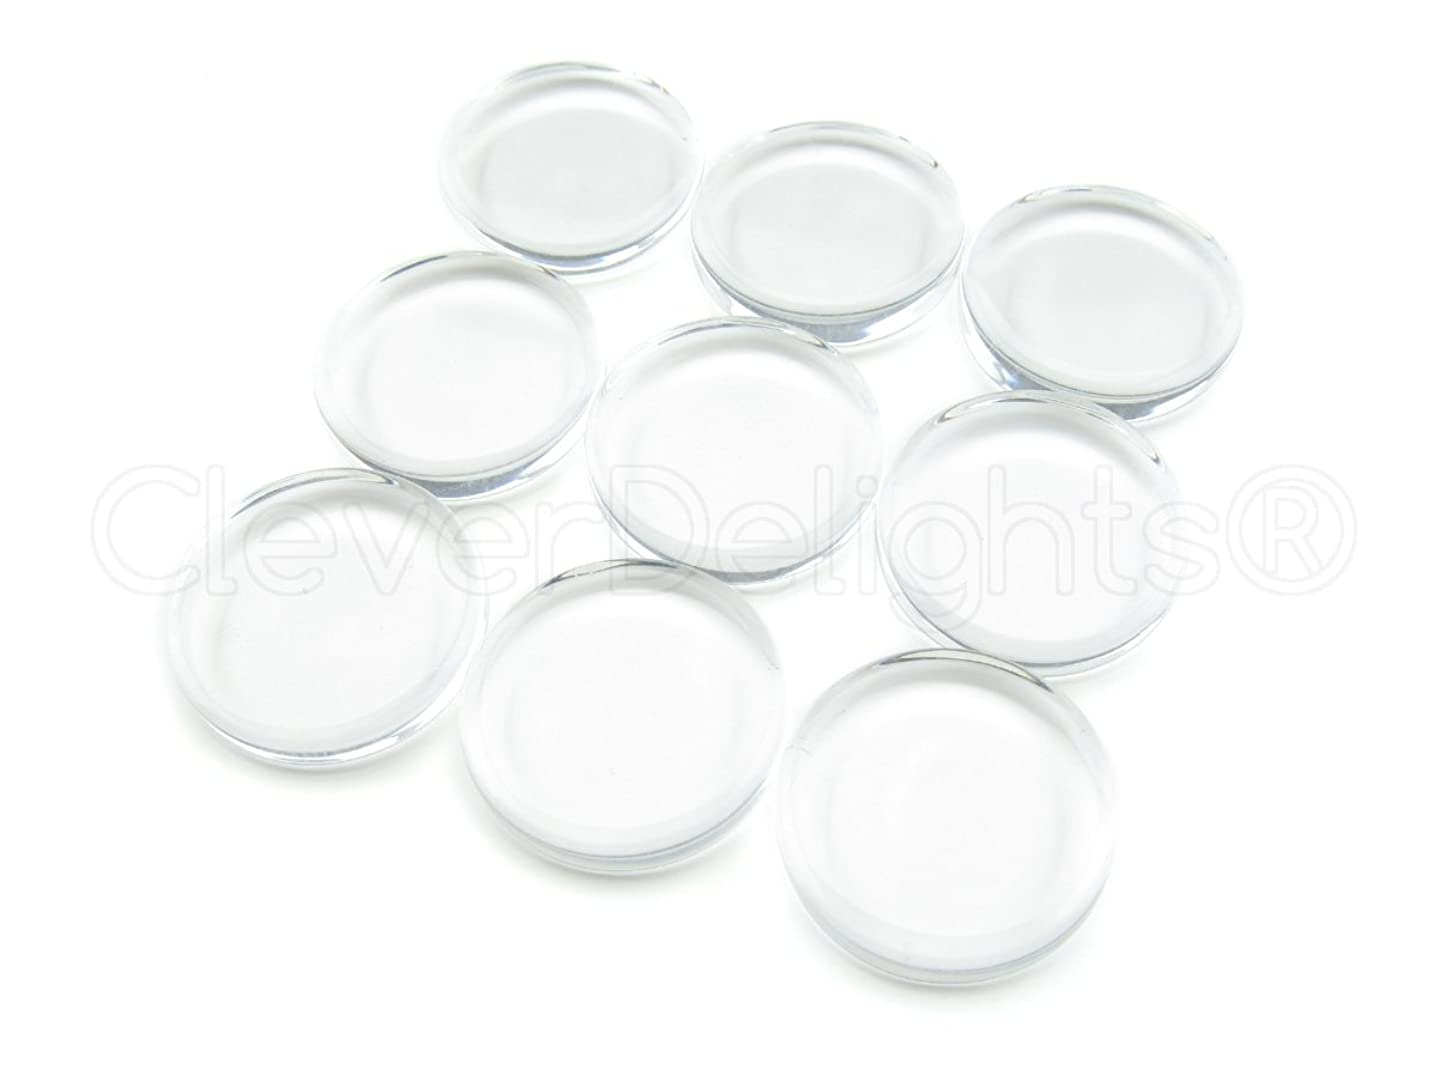 CleverDelights 100 20mm Round Glass Tiles - 3/4